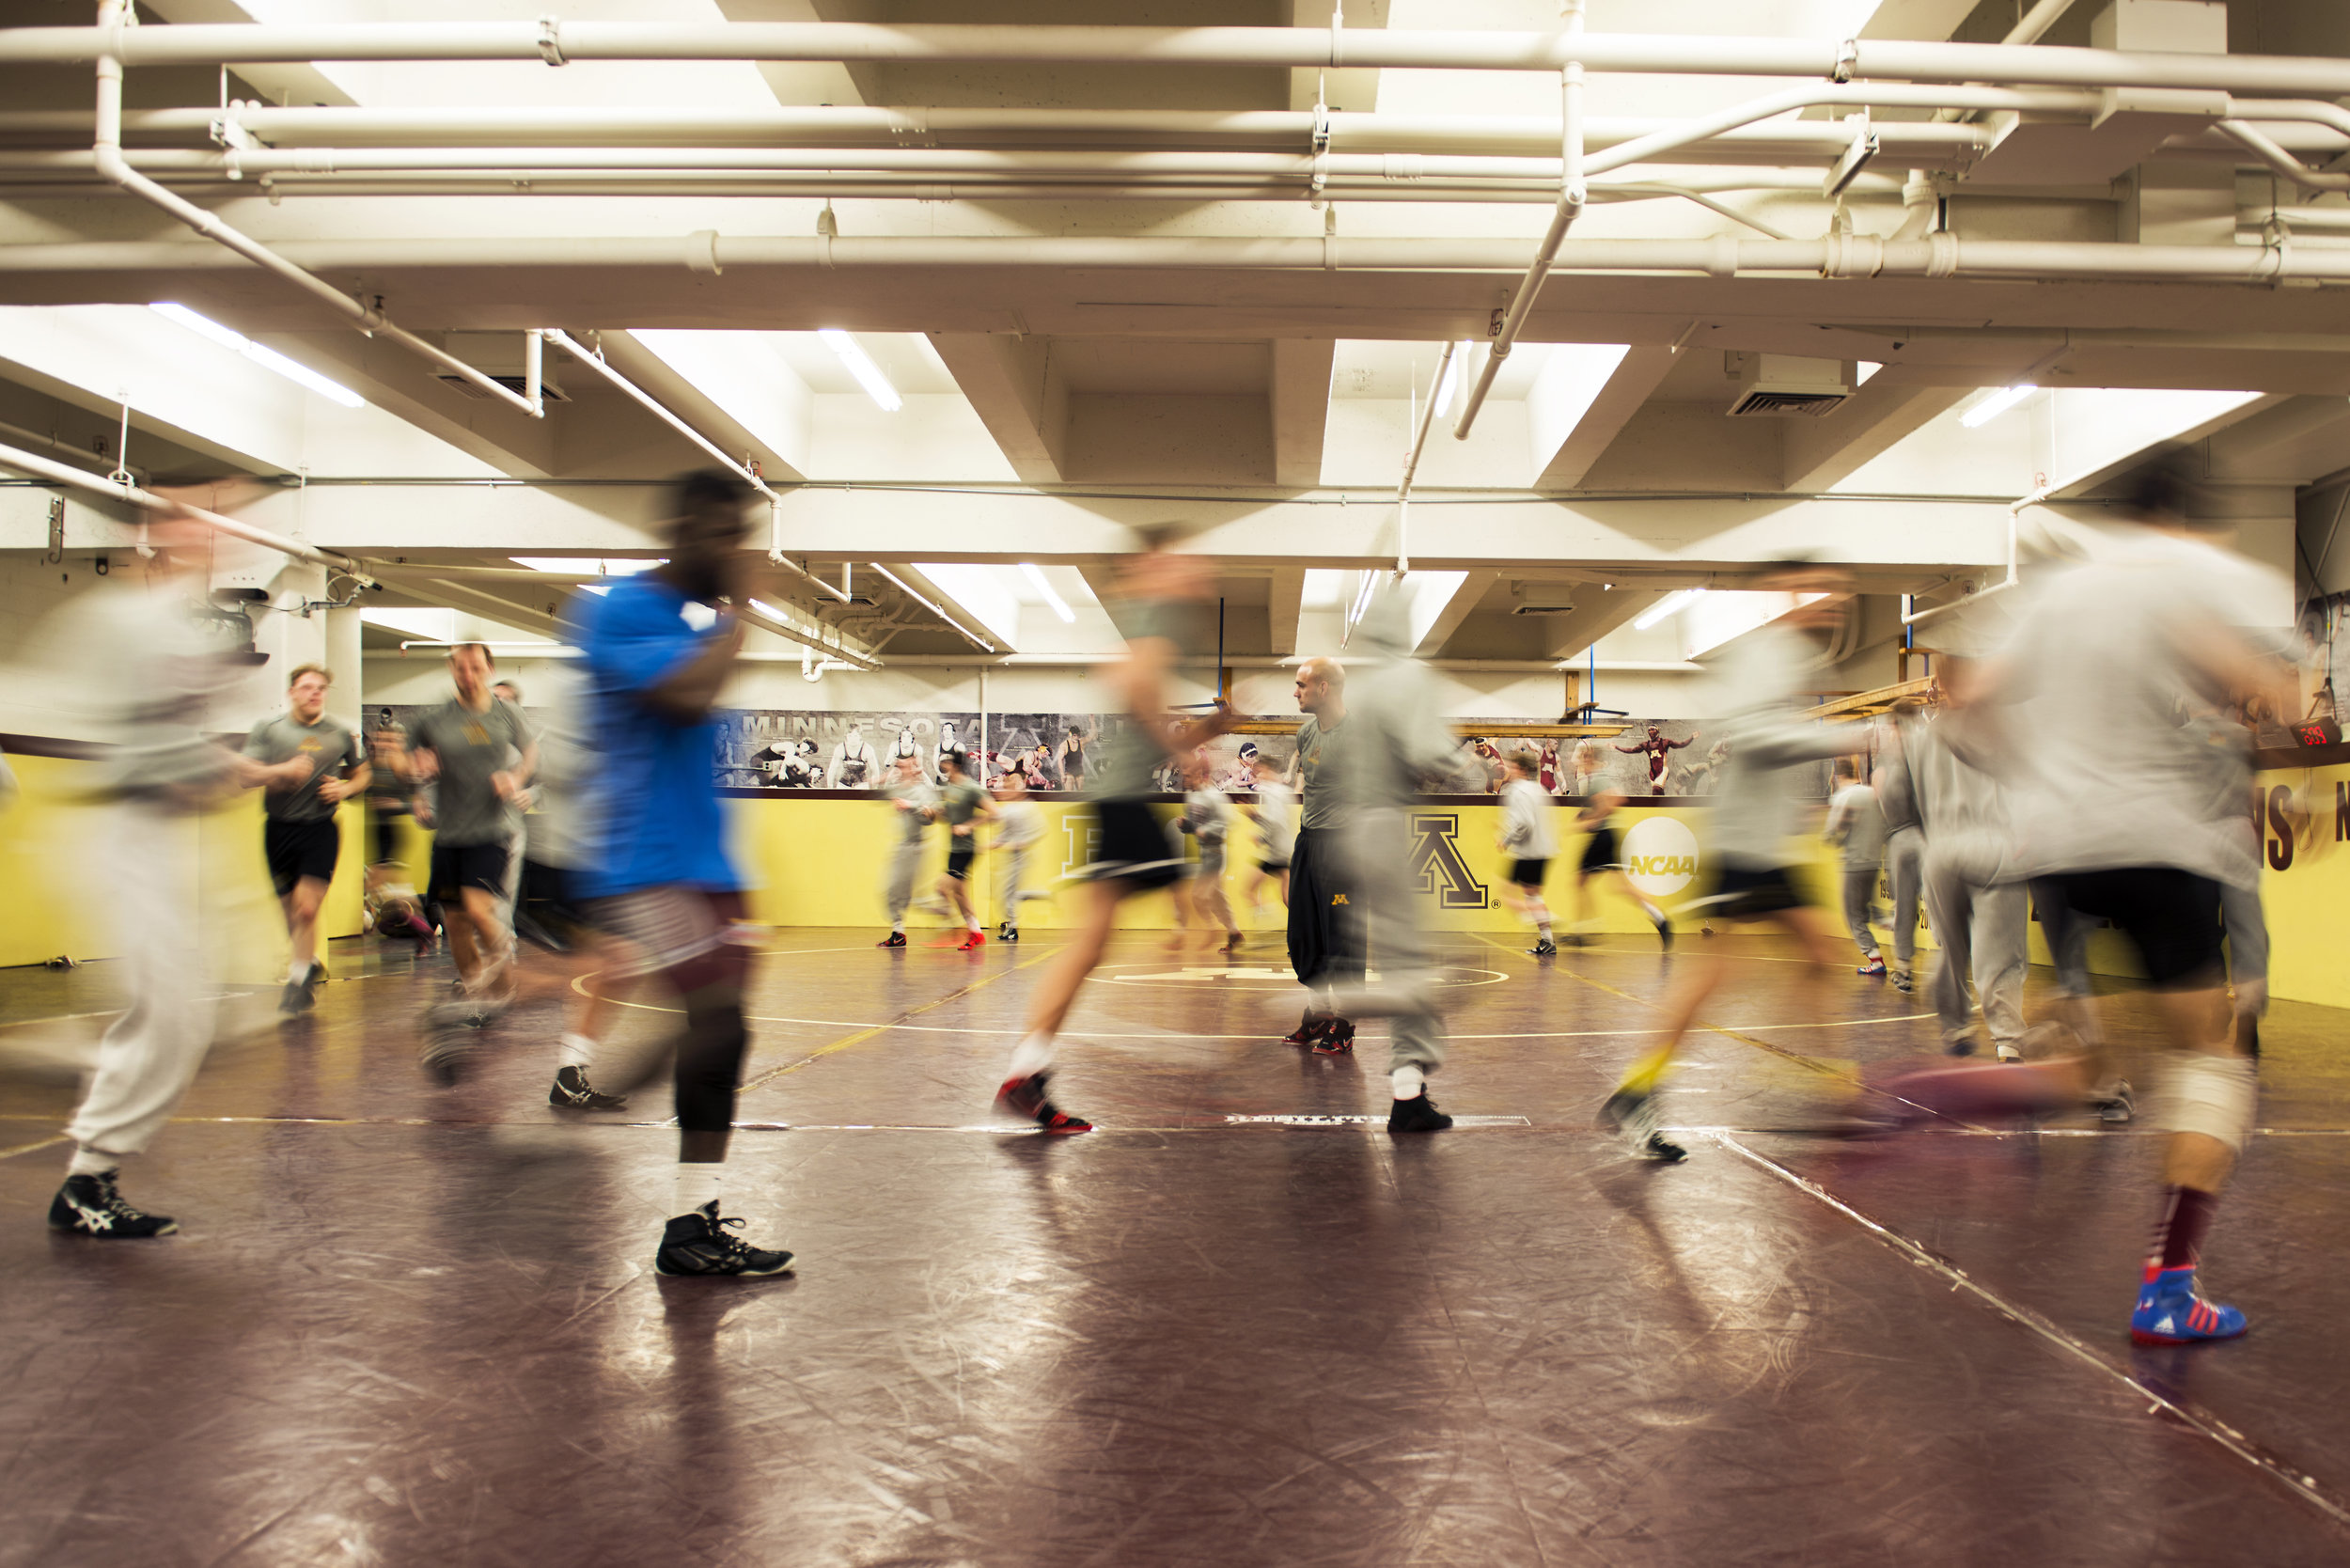 The wrestling team runs laps for a cardio warmup at the start of practice.